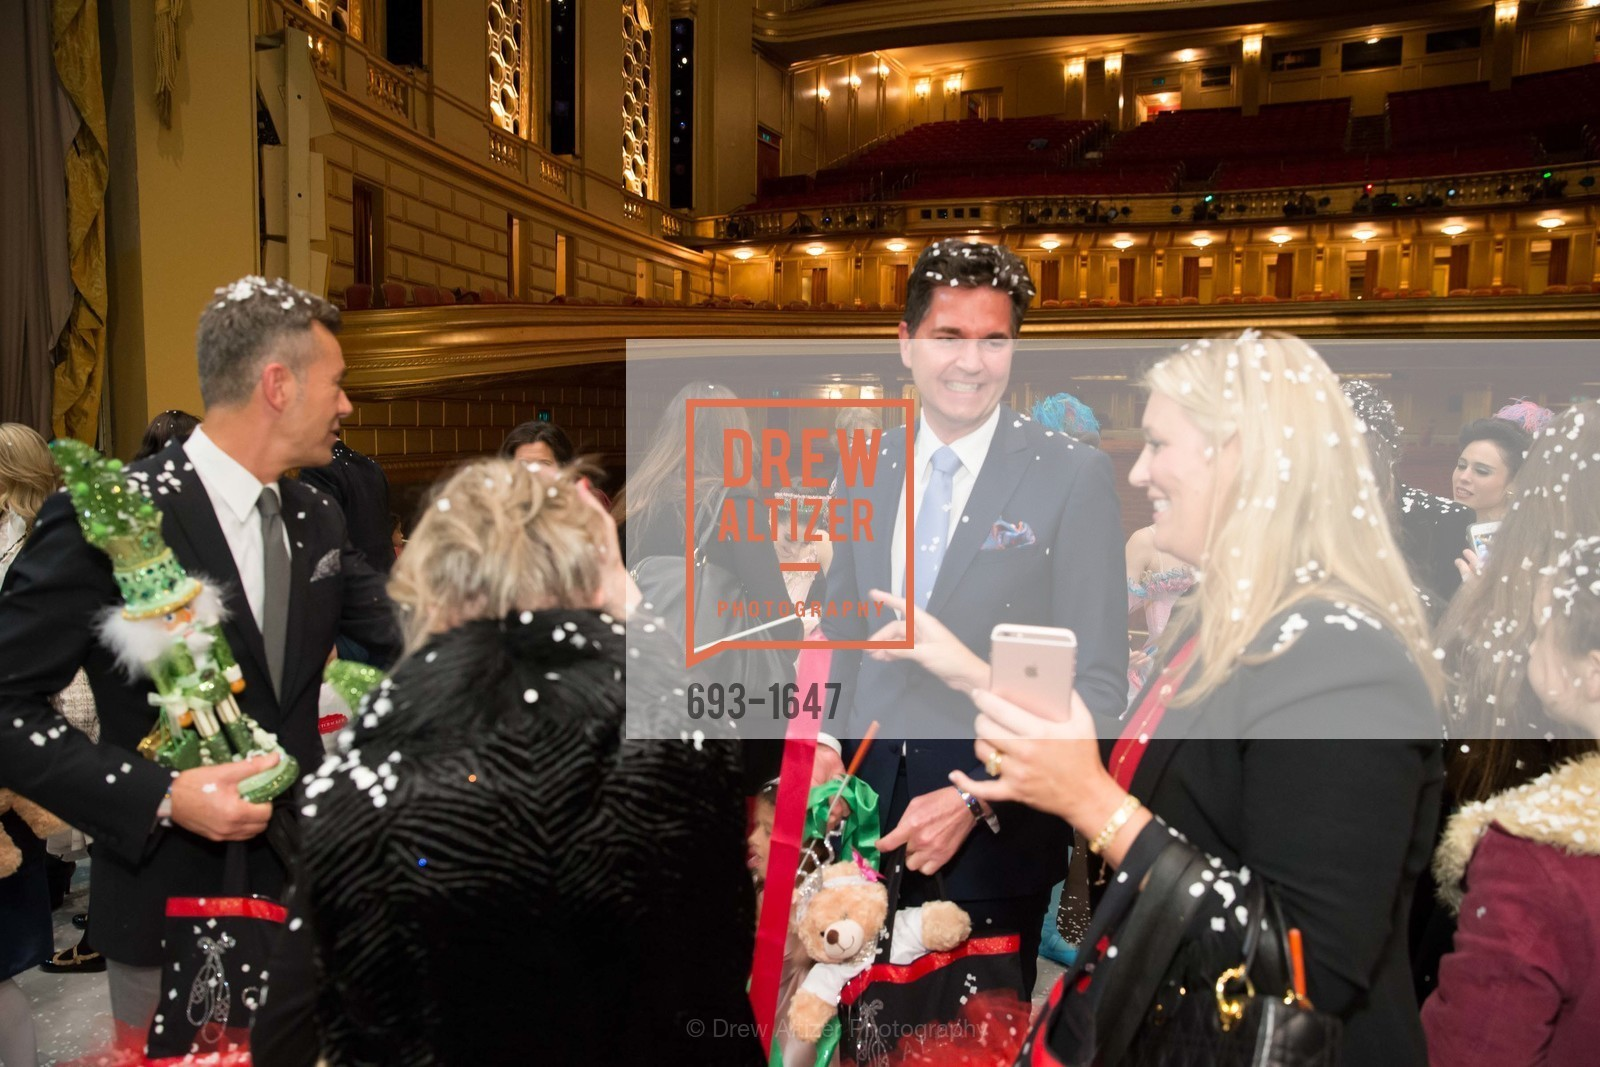 Atmosphere, SF Ballet's Nutcracker Luncheon, City Hall & War Memorial Opera House. 301 Van Ness Ave, San Francisco, CA 94109, December 11th, 2016